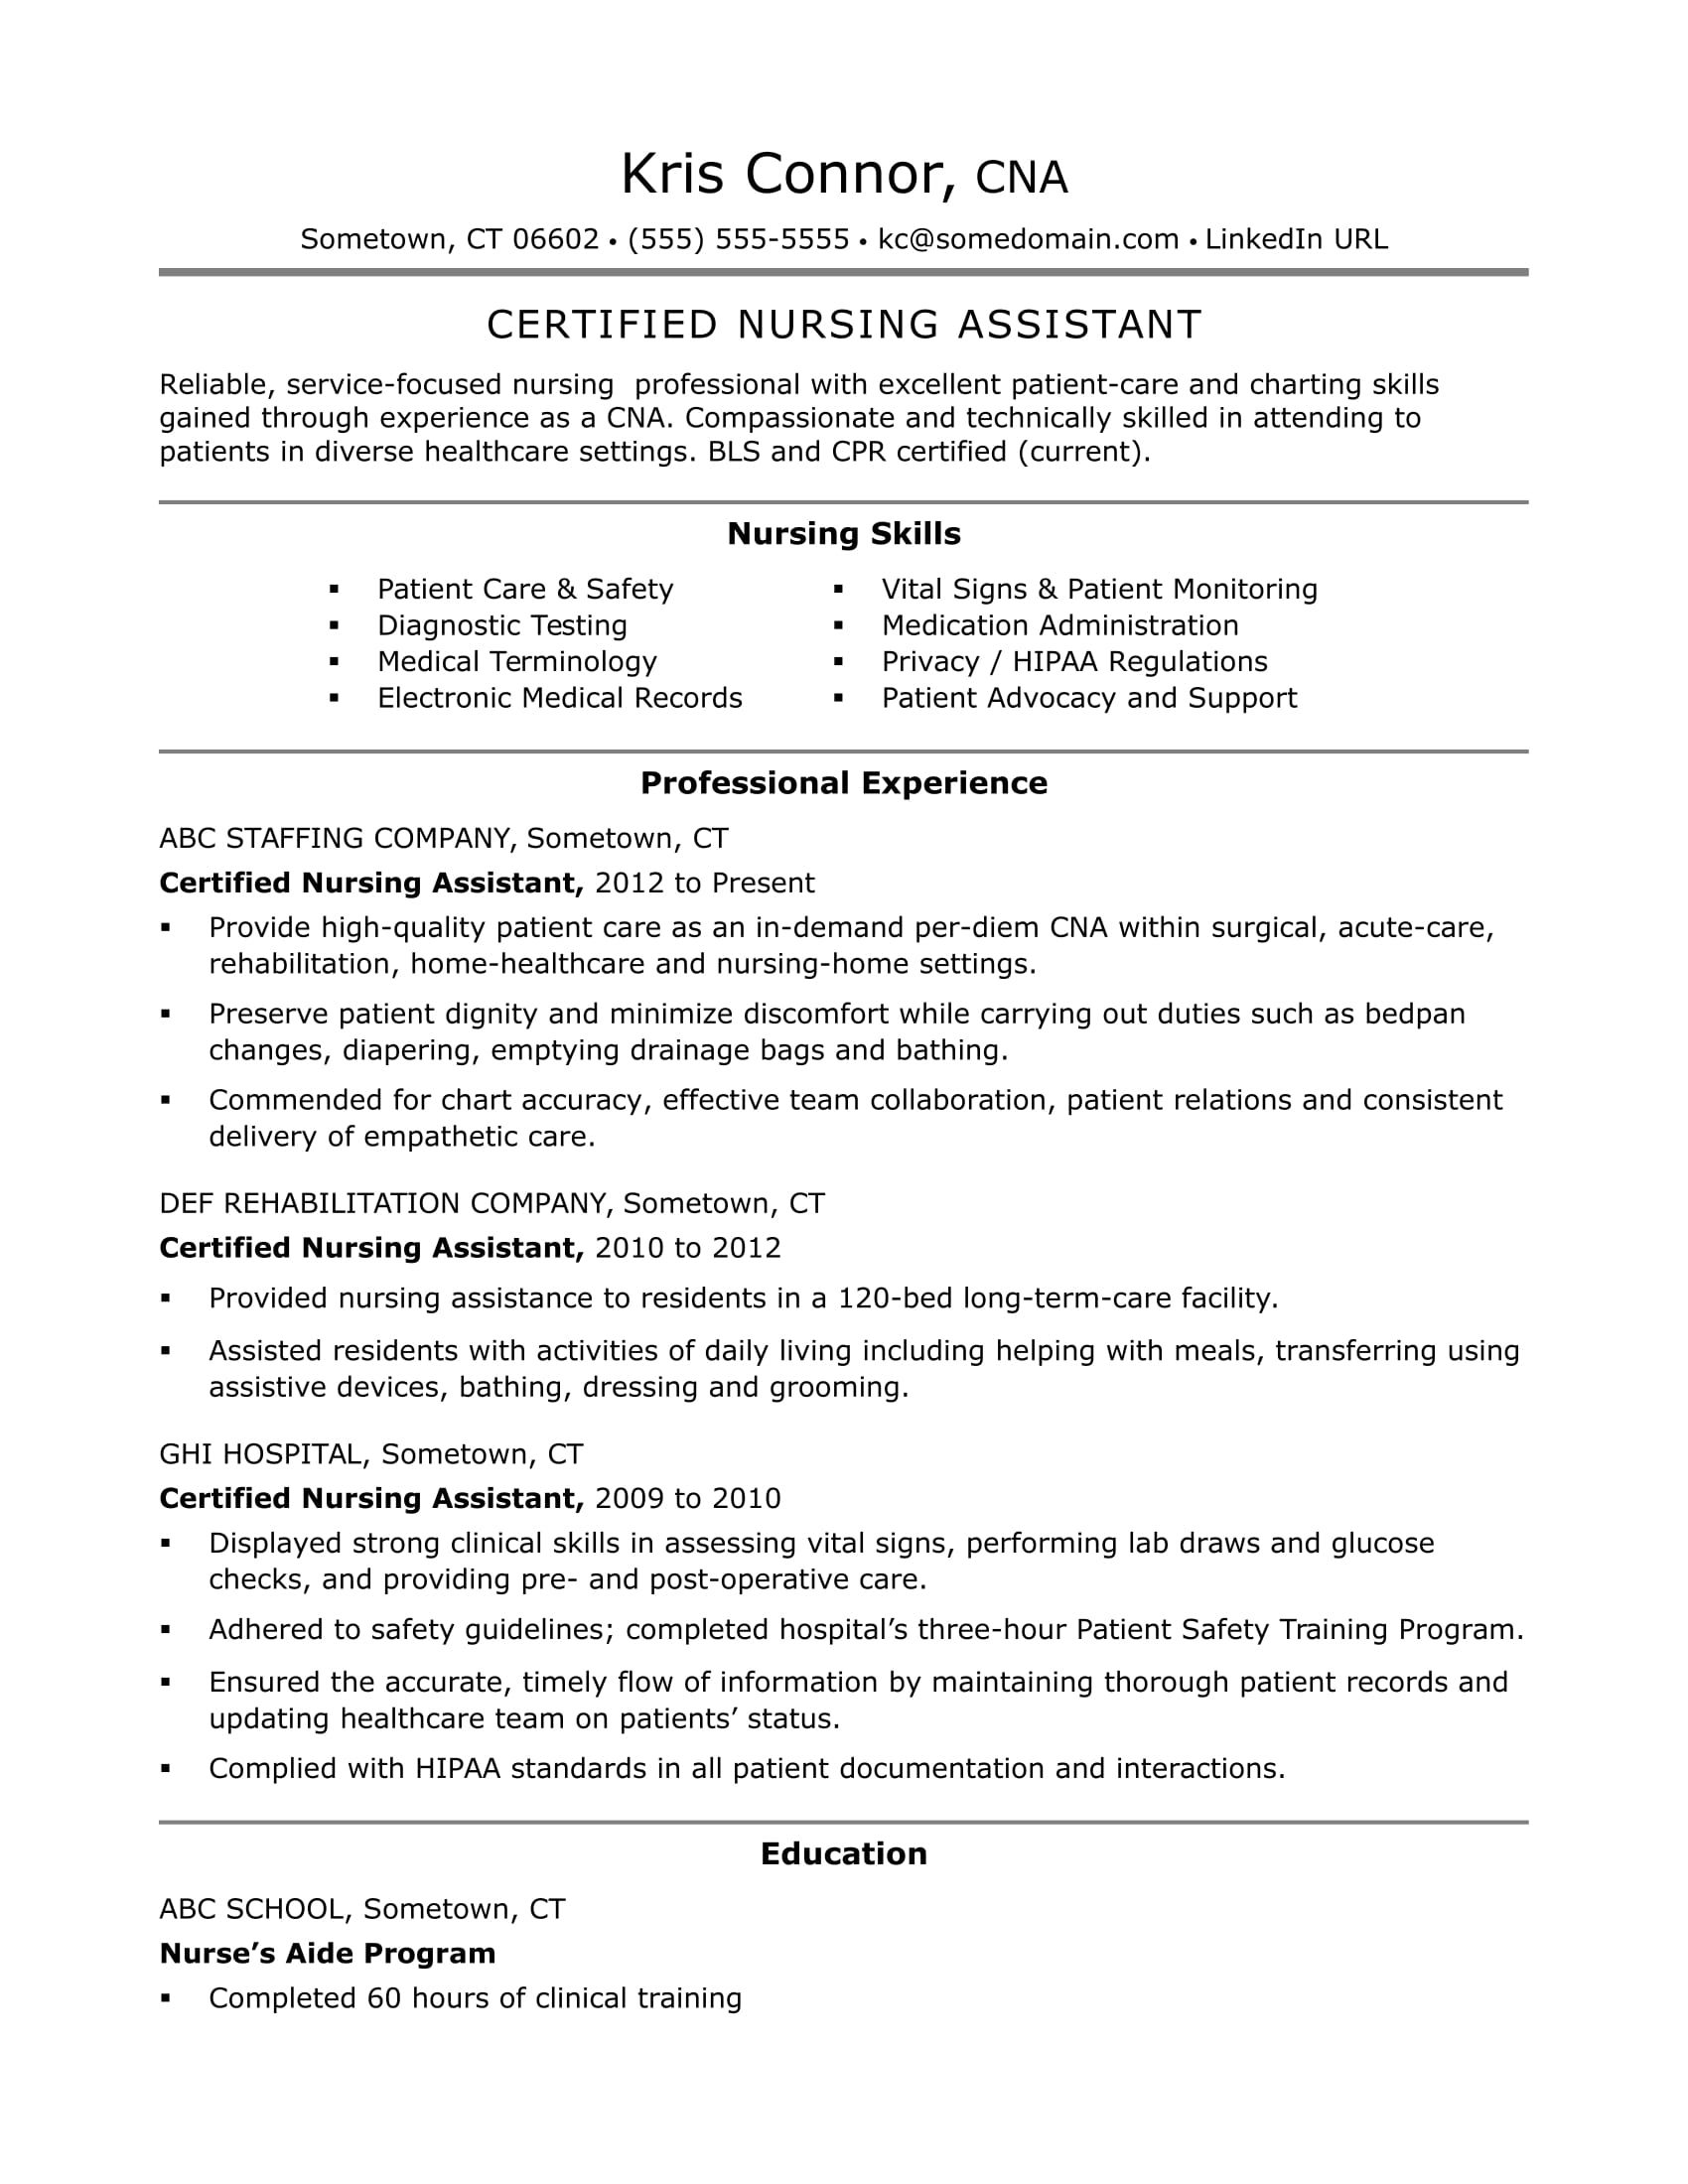 Cna Resume Examples Skills For Cnas  Monsterm. Resume Cover Letters Samples. How To Write An Impressive Resume. Free Printable Resume Templates. Free Easy Resume Builder. Example Job Resume. Google Docs Resume. Phlebotomist Resume No Experience. Programs To Put On Resume